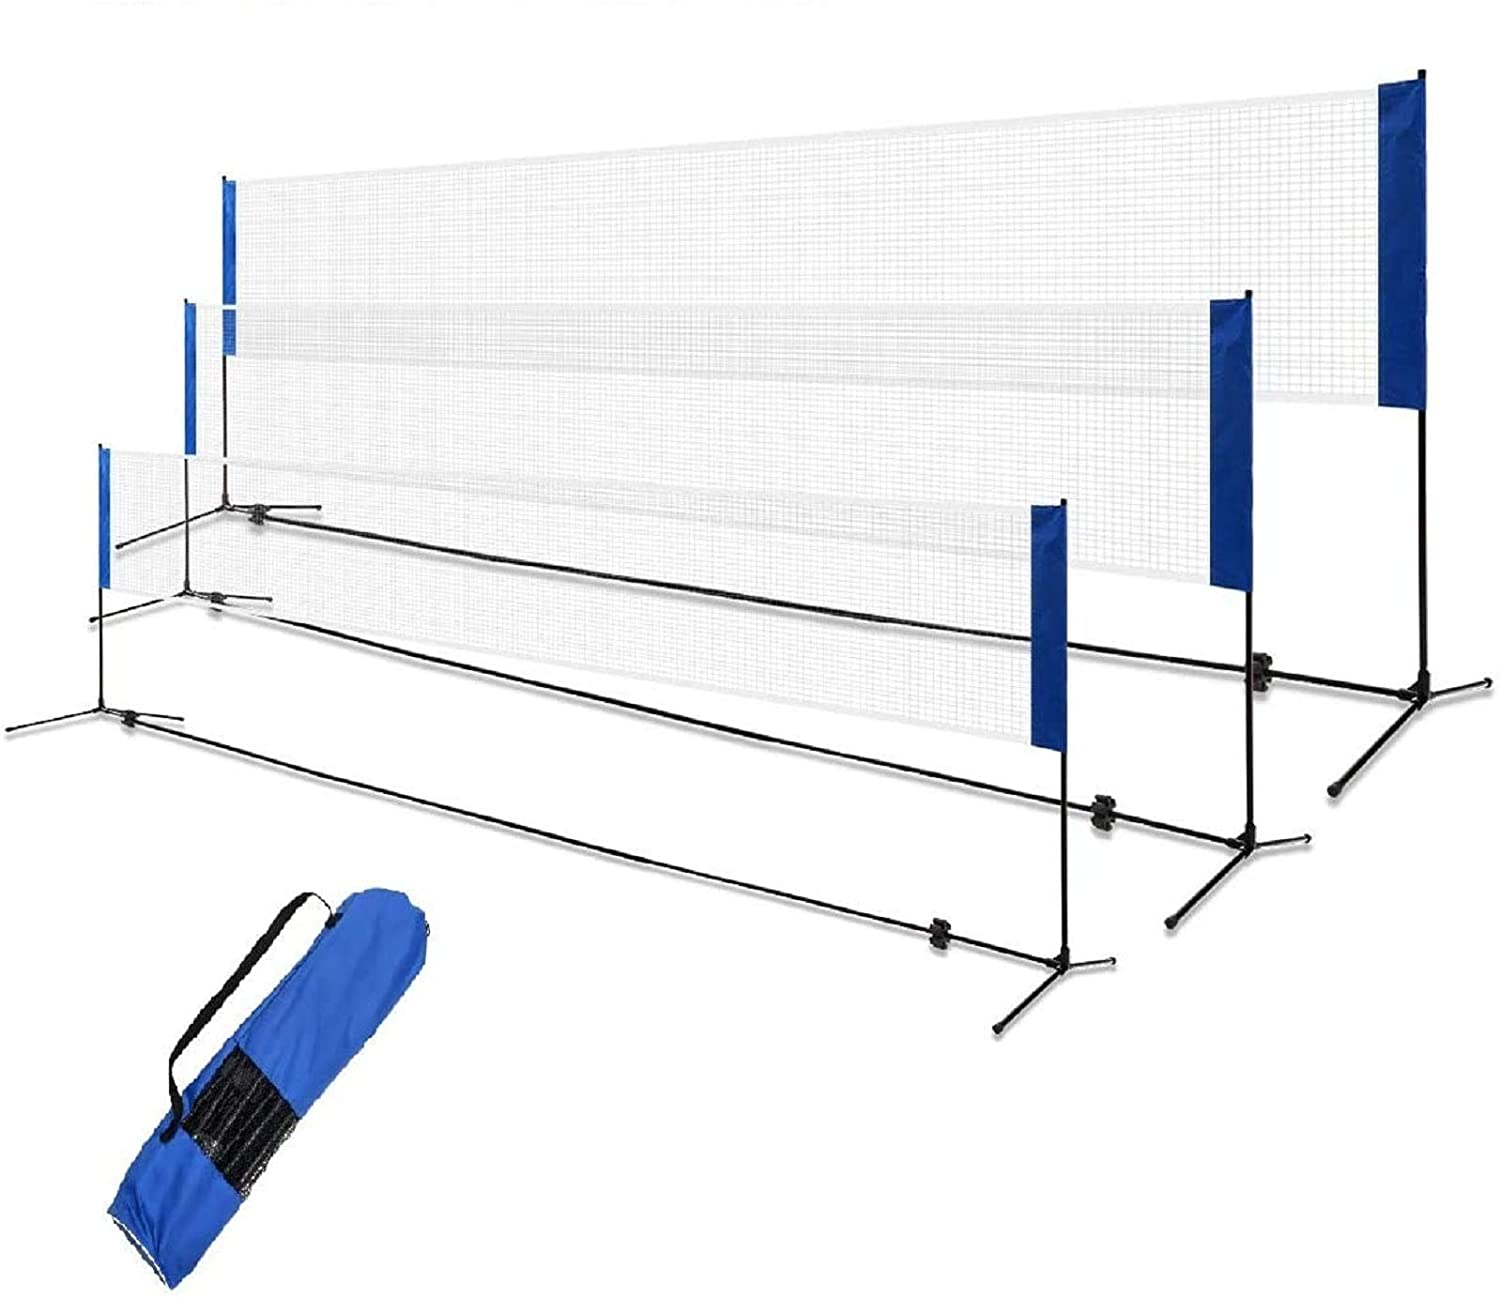 GYMAX Portable Badminton Virginia Beach Mall Net Set 10FT 14FT Sales for sale 17FT Adjustab Height